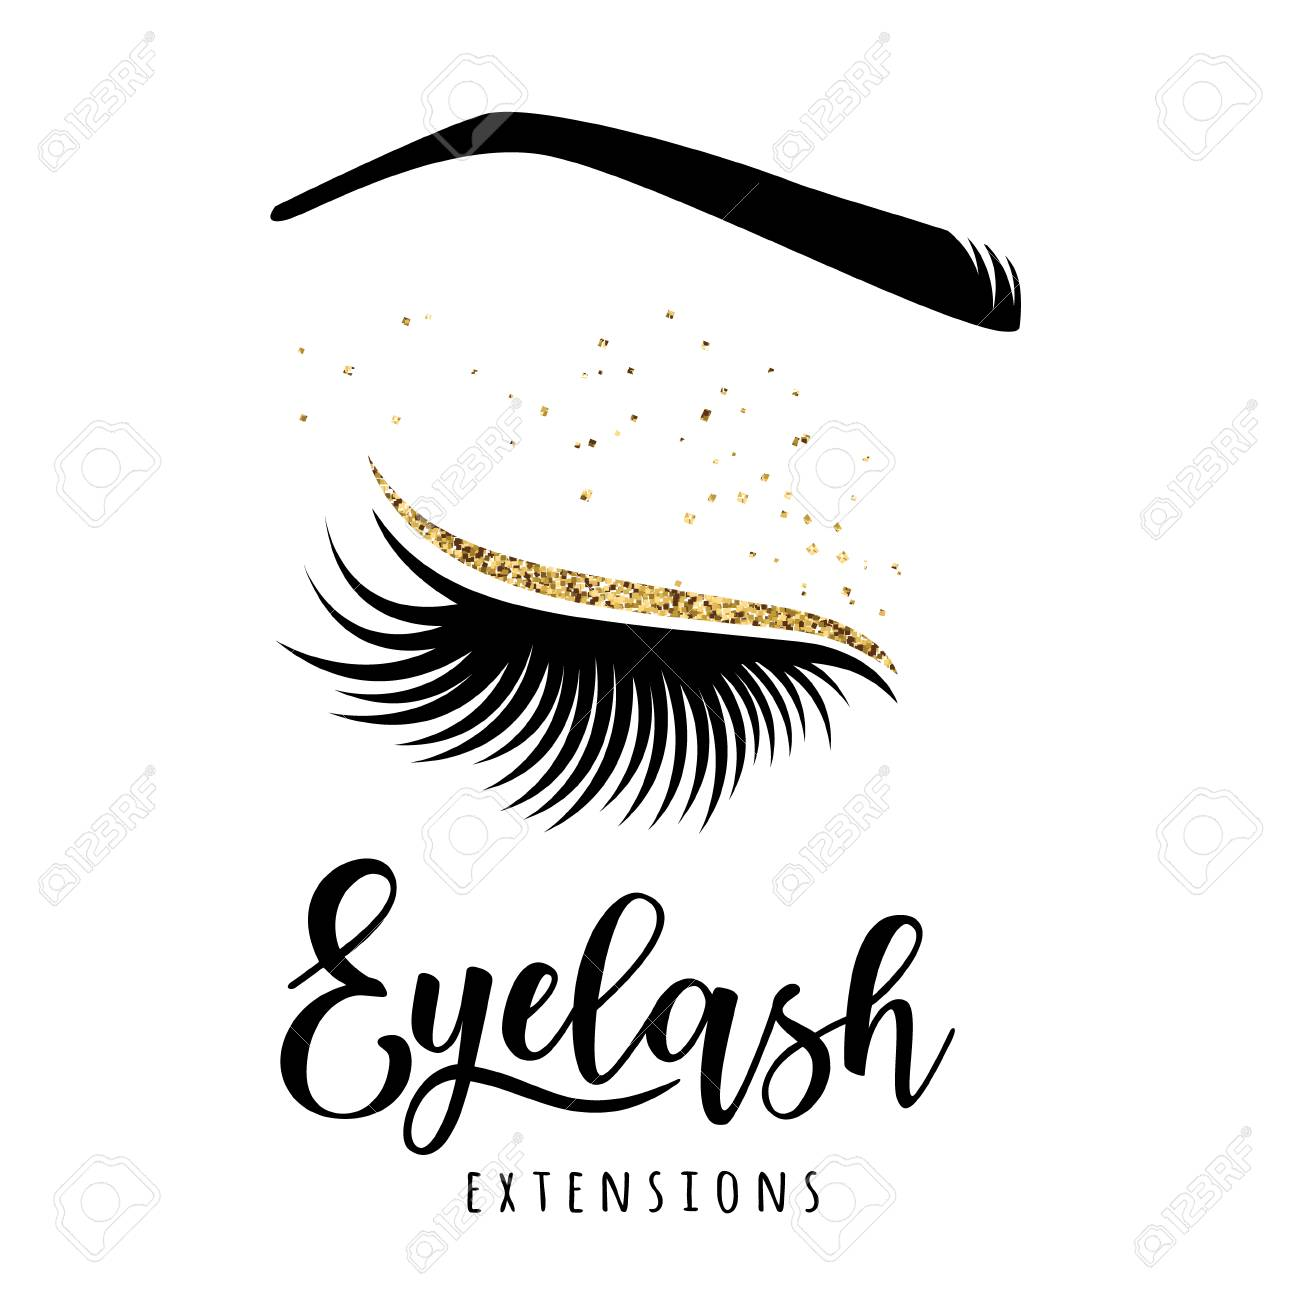 Eyelash extensions logo. Vector illustration of lashes. For beauty...